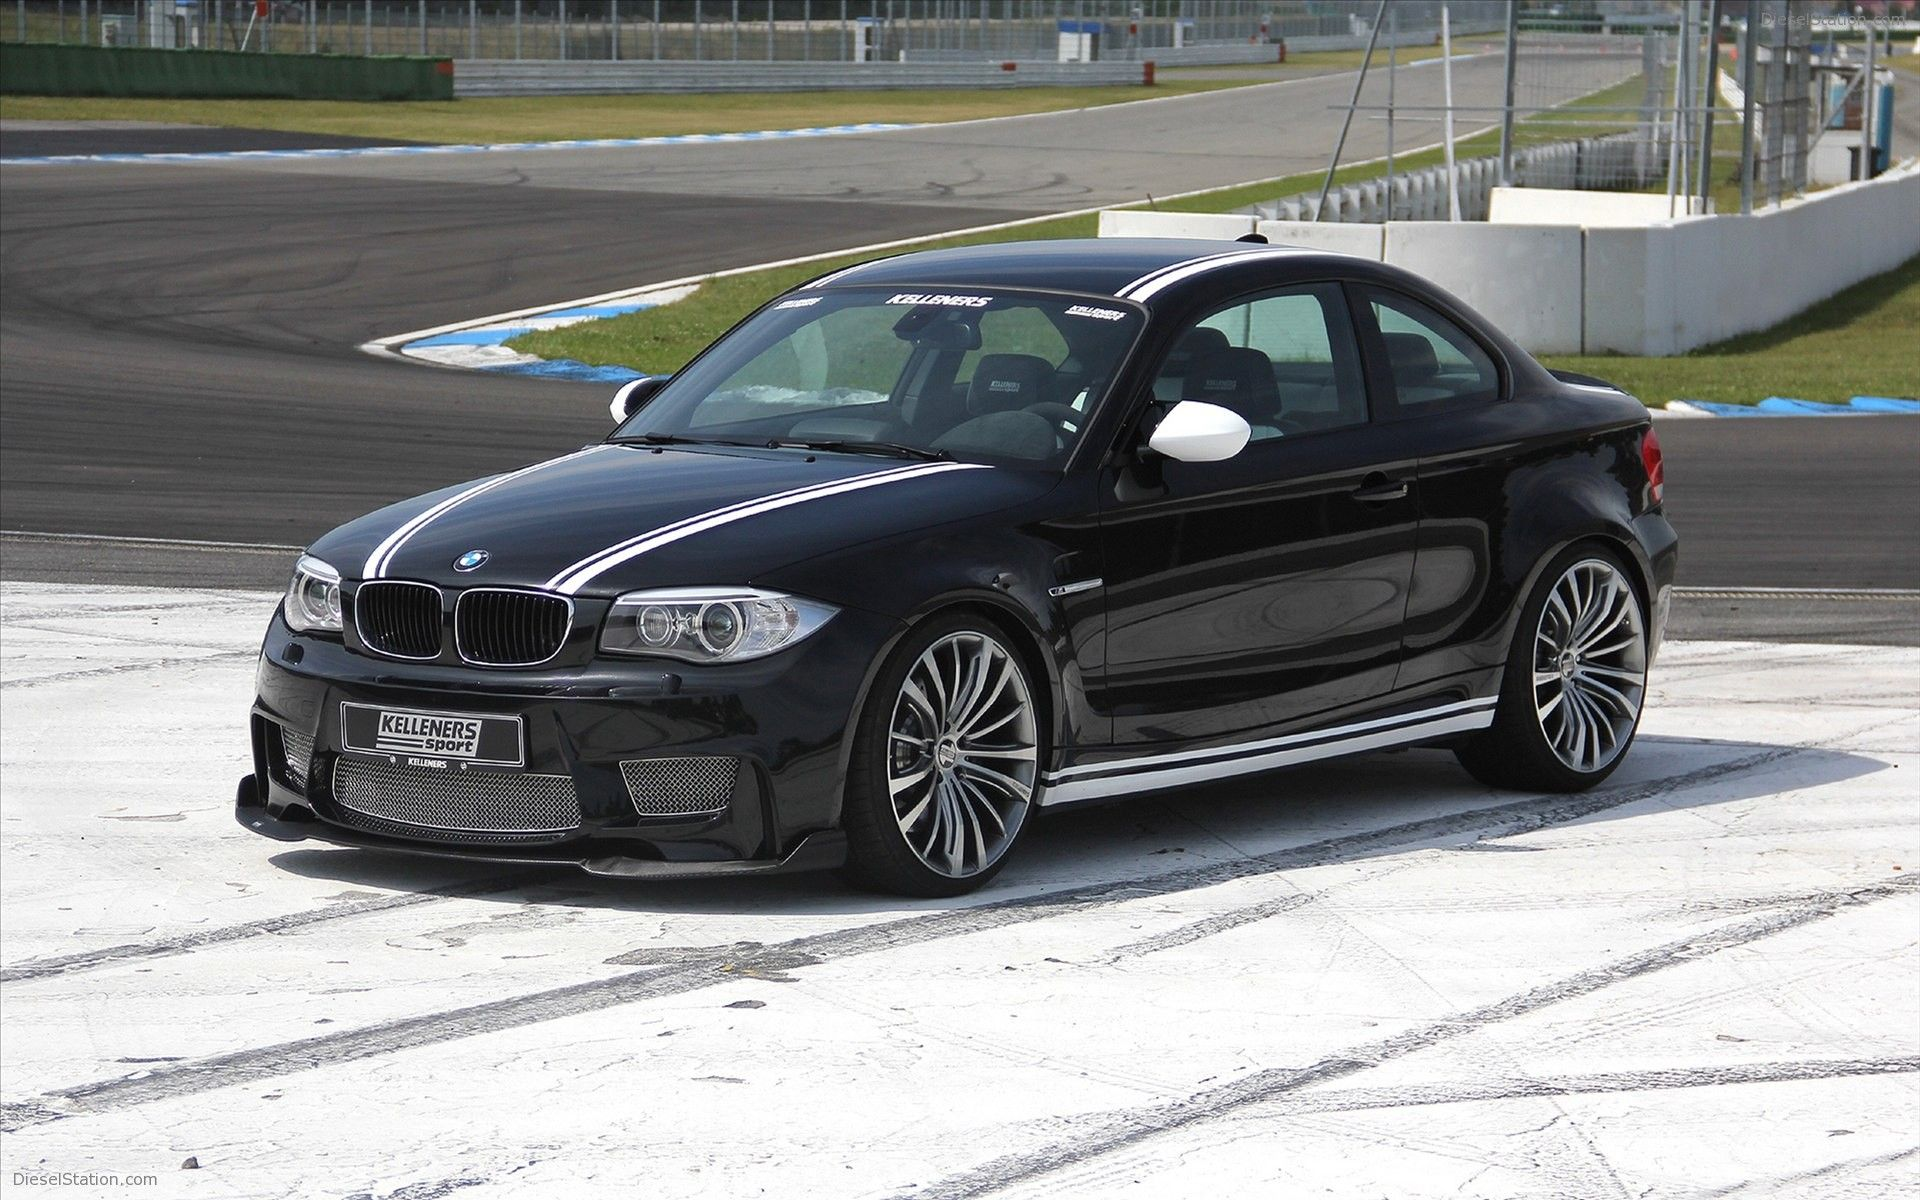 Kelleners Sport Ks1 S Bmw 1 Series M Coupe 2011 Bmw Bmw 1